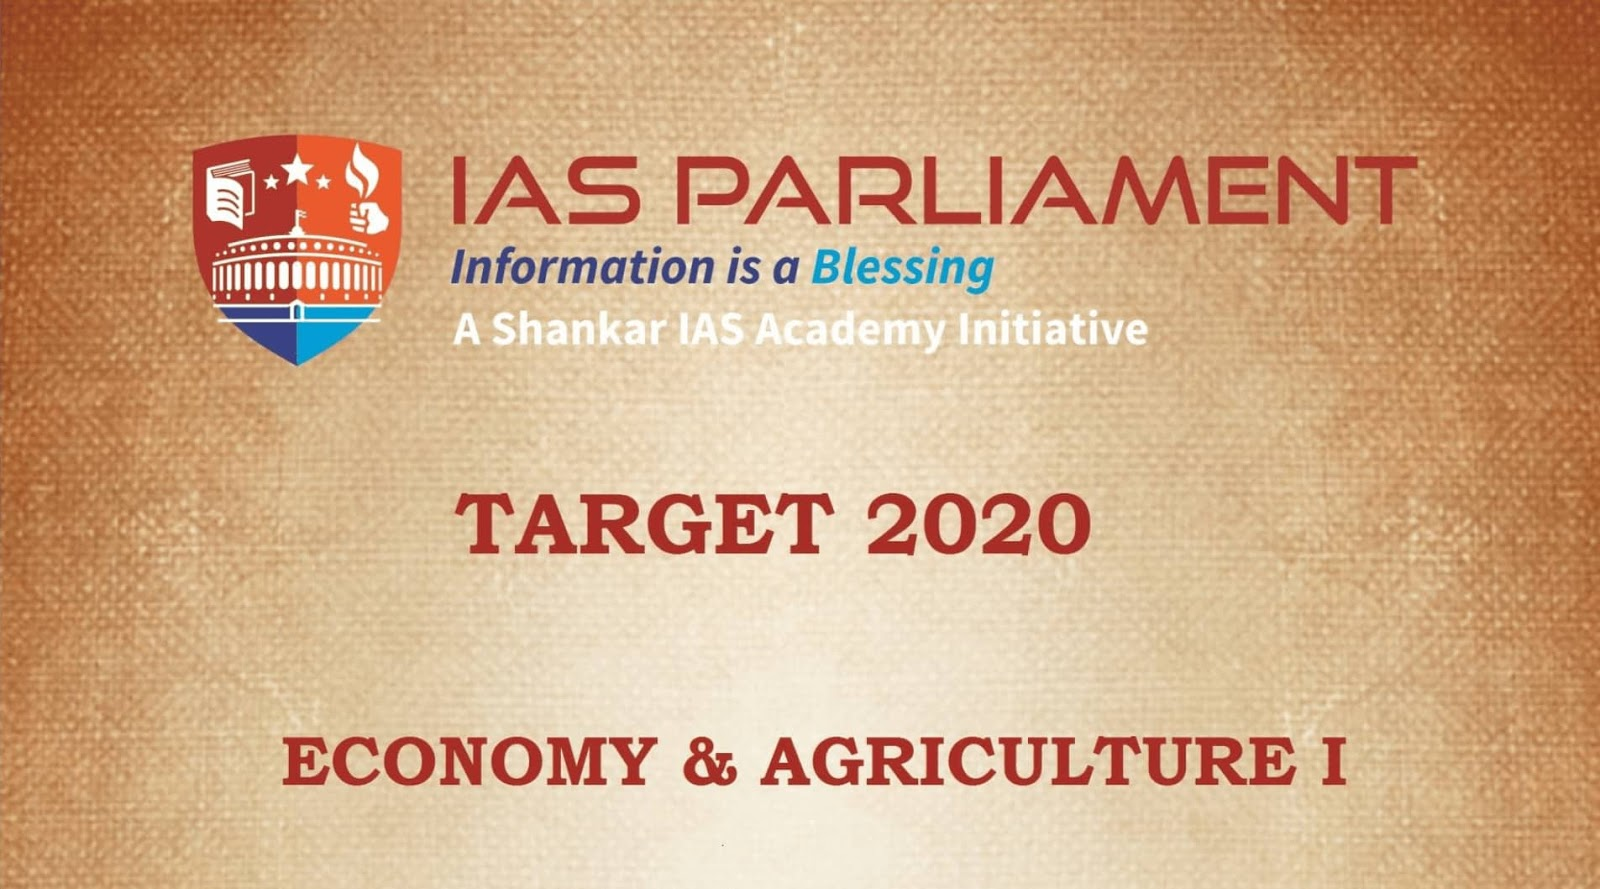 Economy and Agriculture I